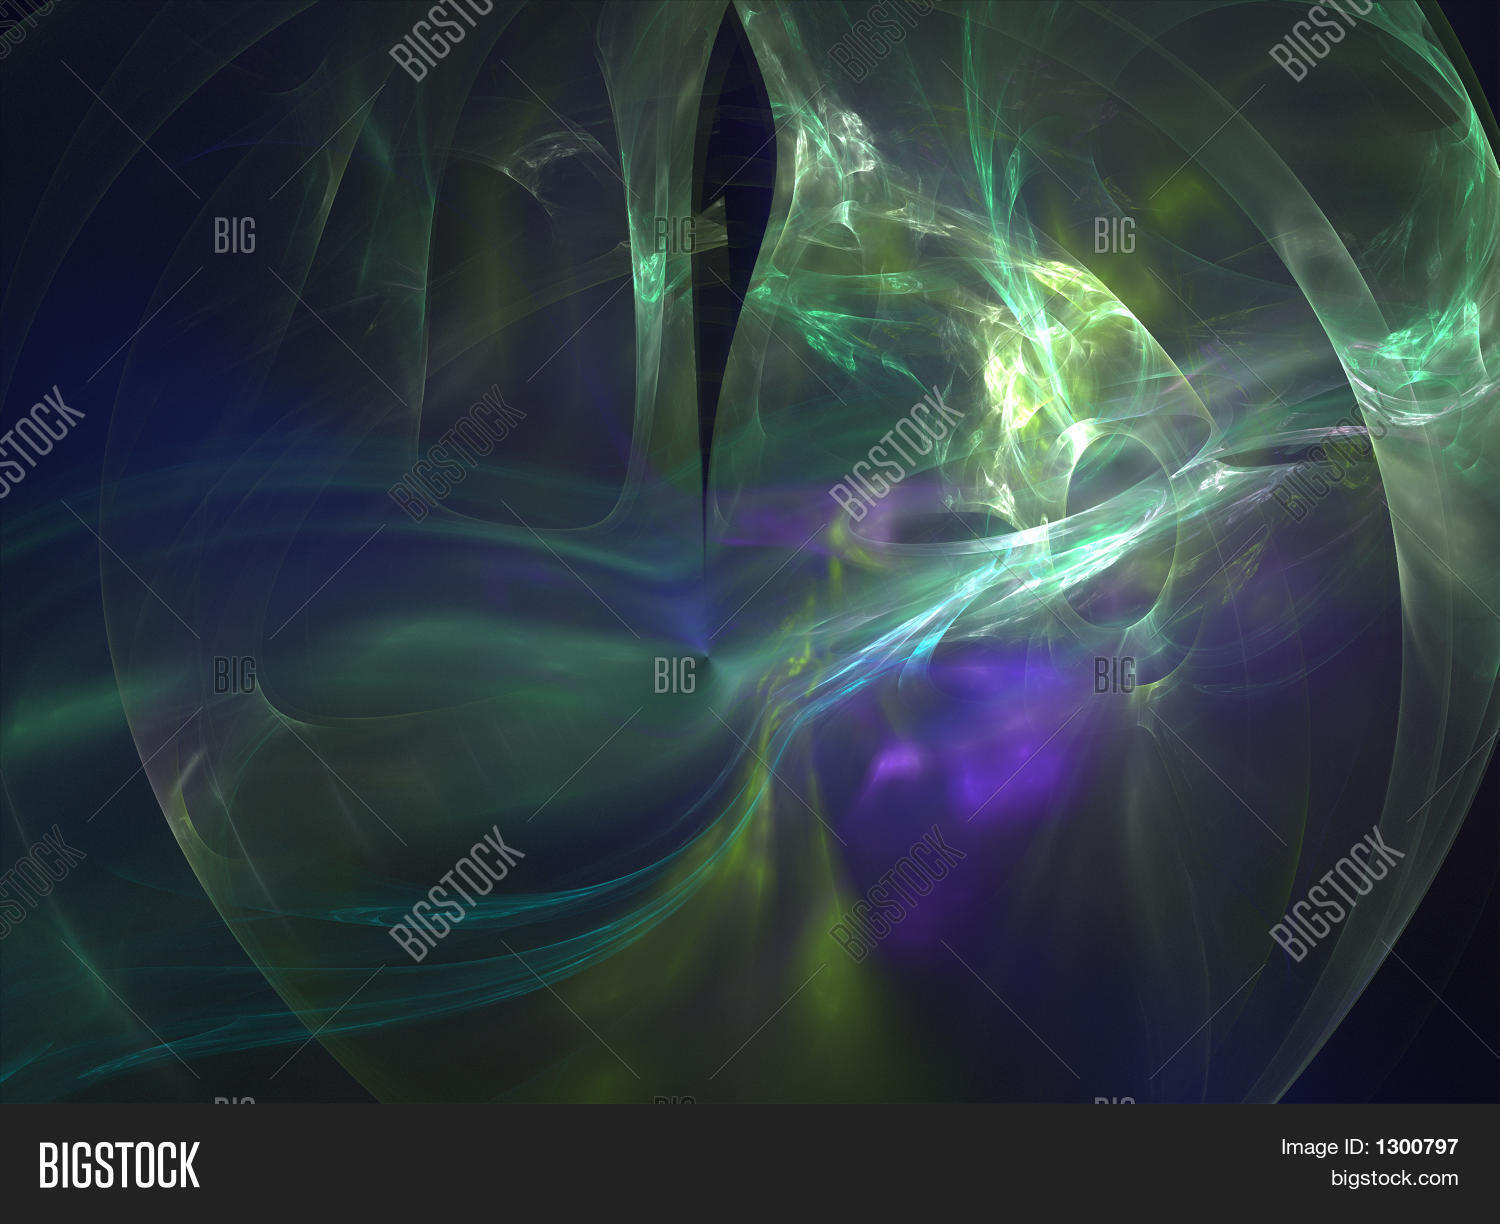 3d,abstract,advertisement,advertising,album,andromeda,art,artistic,astronomy,backdrop,background,blue,chaos,circles,cloud,colorful,colourful,commercial,curves,design,dust,electric,fantasy,fractal,futuristic,galactic,galaxy,high-tech,light,light-year,lines,moon,motion,nebula,outer,pattern,planet,pod,sci-fi,science,shapes,space,spheres,star,texture,translucent,void,wallpaper,wonder